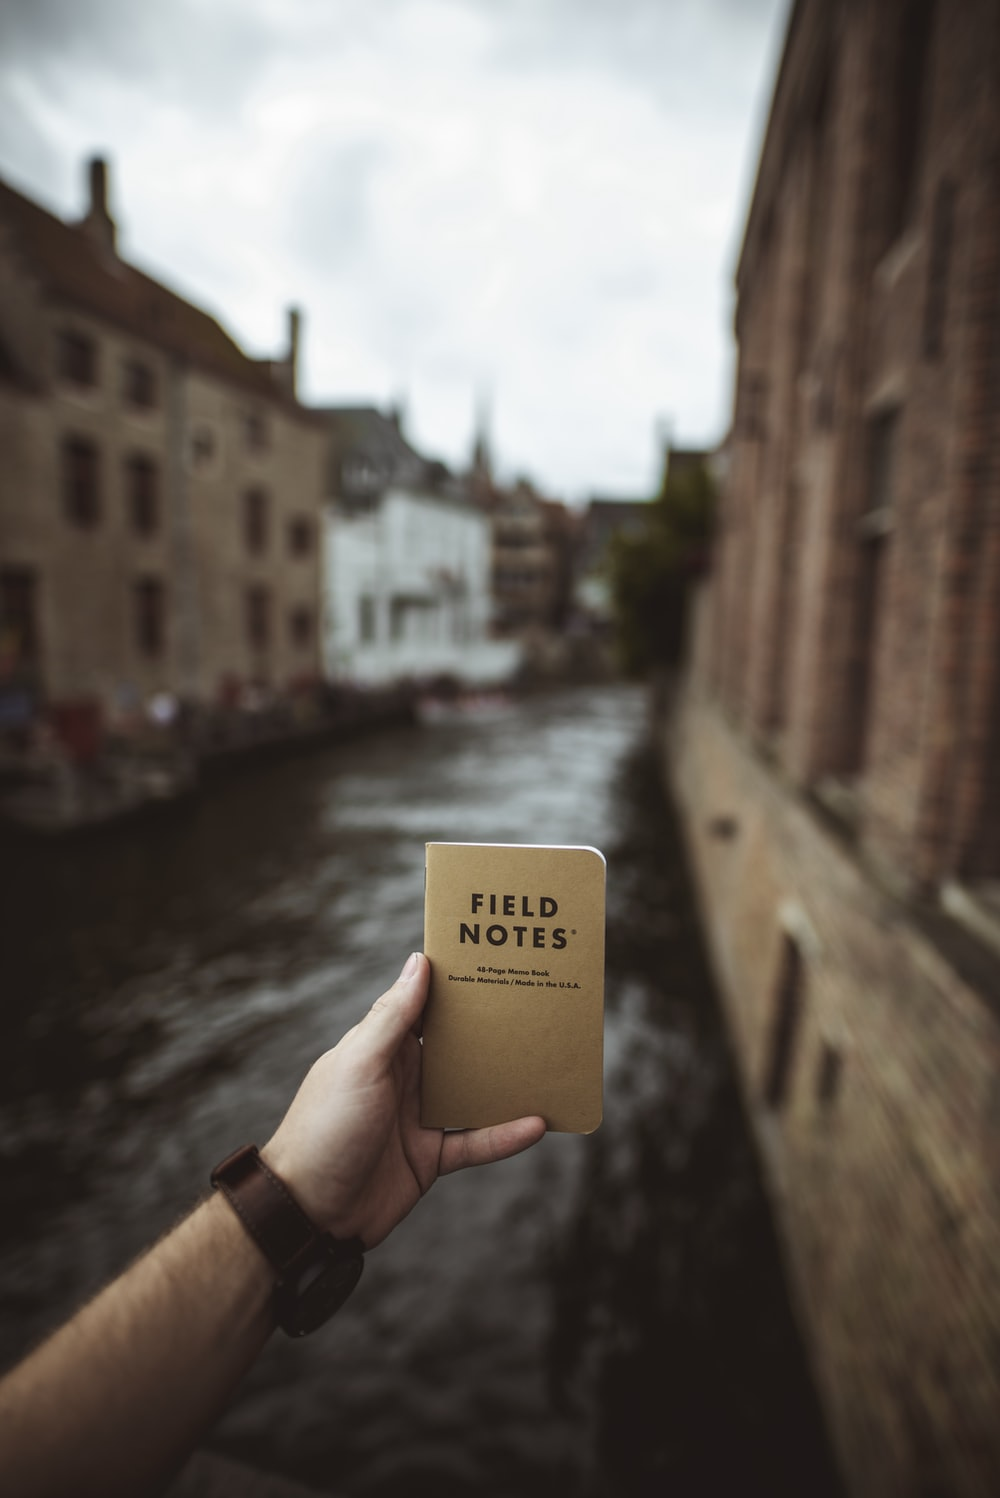 Fields Notes notebook in person's hand